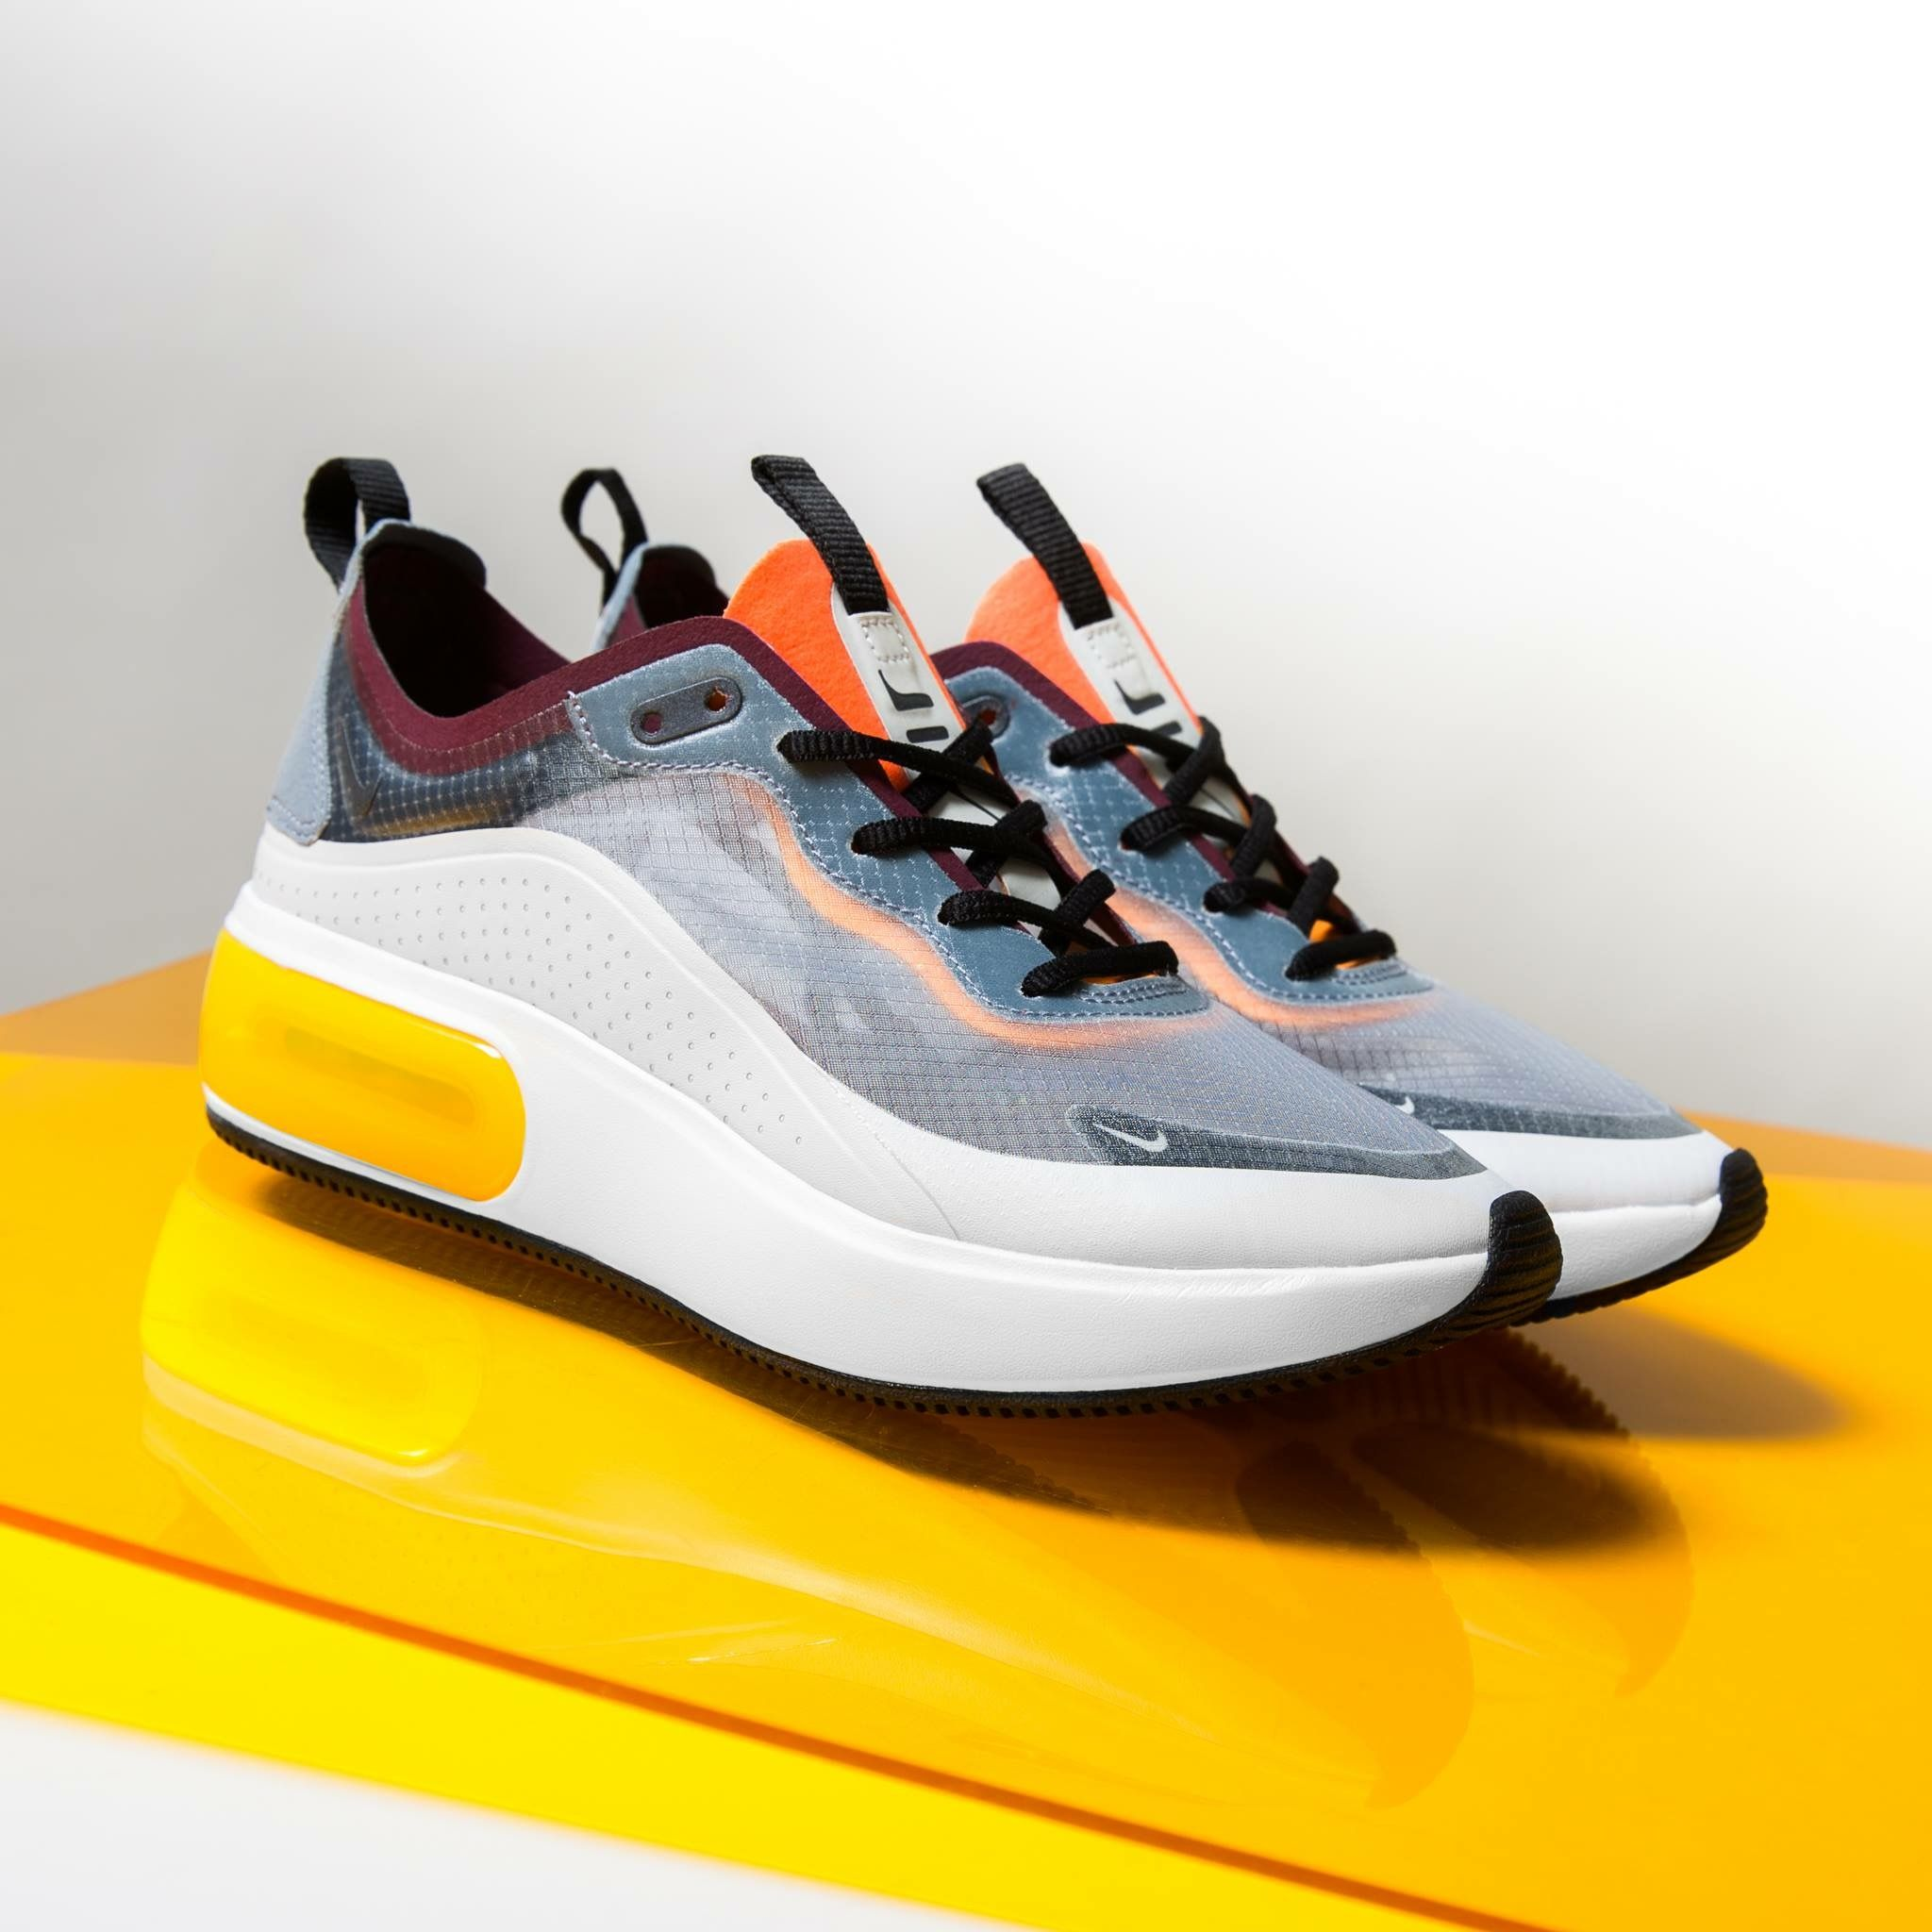 Nike Air Max Dia Shoes In 2019 Sneakers Shoes Nike Shoes